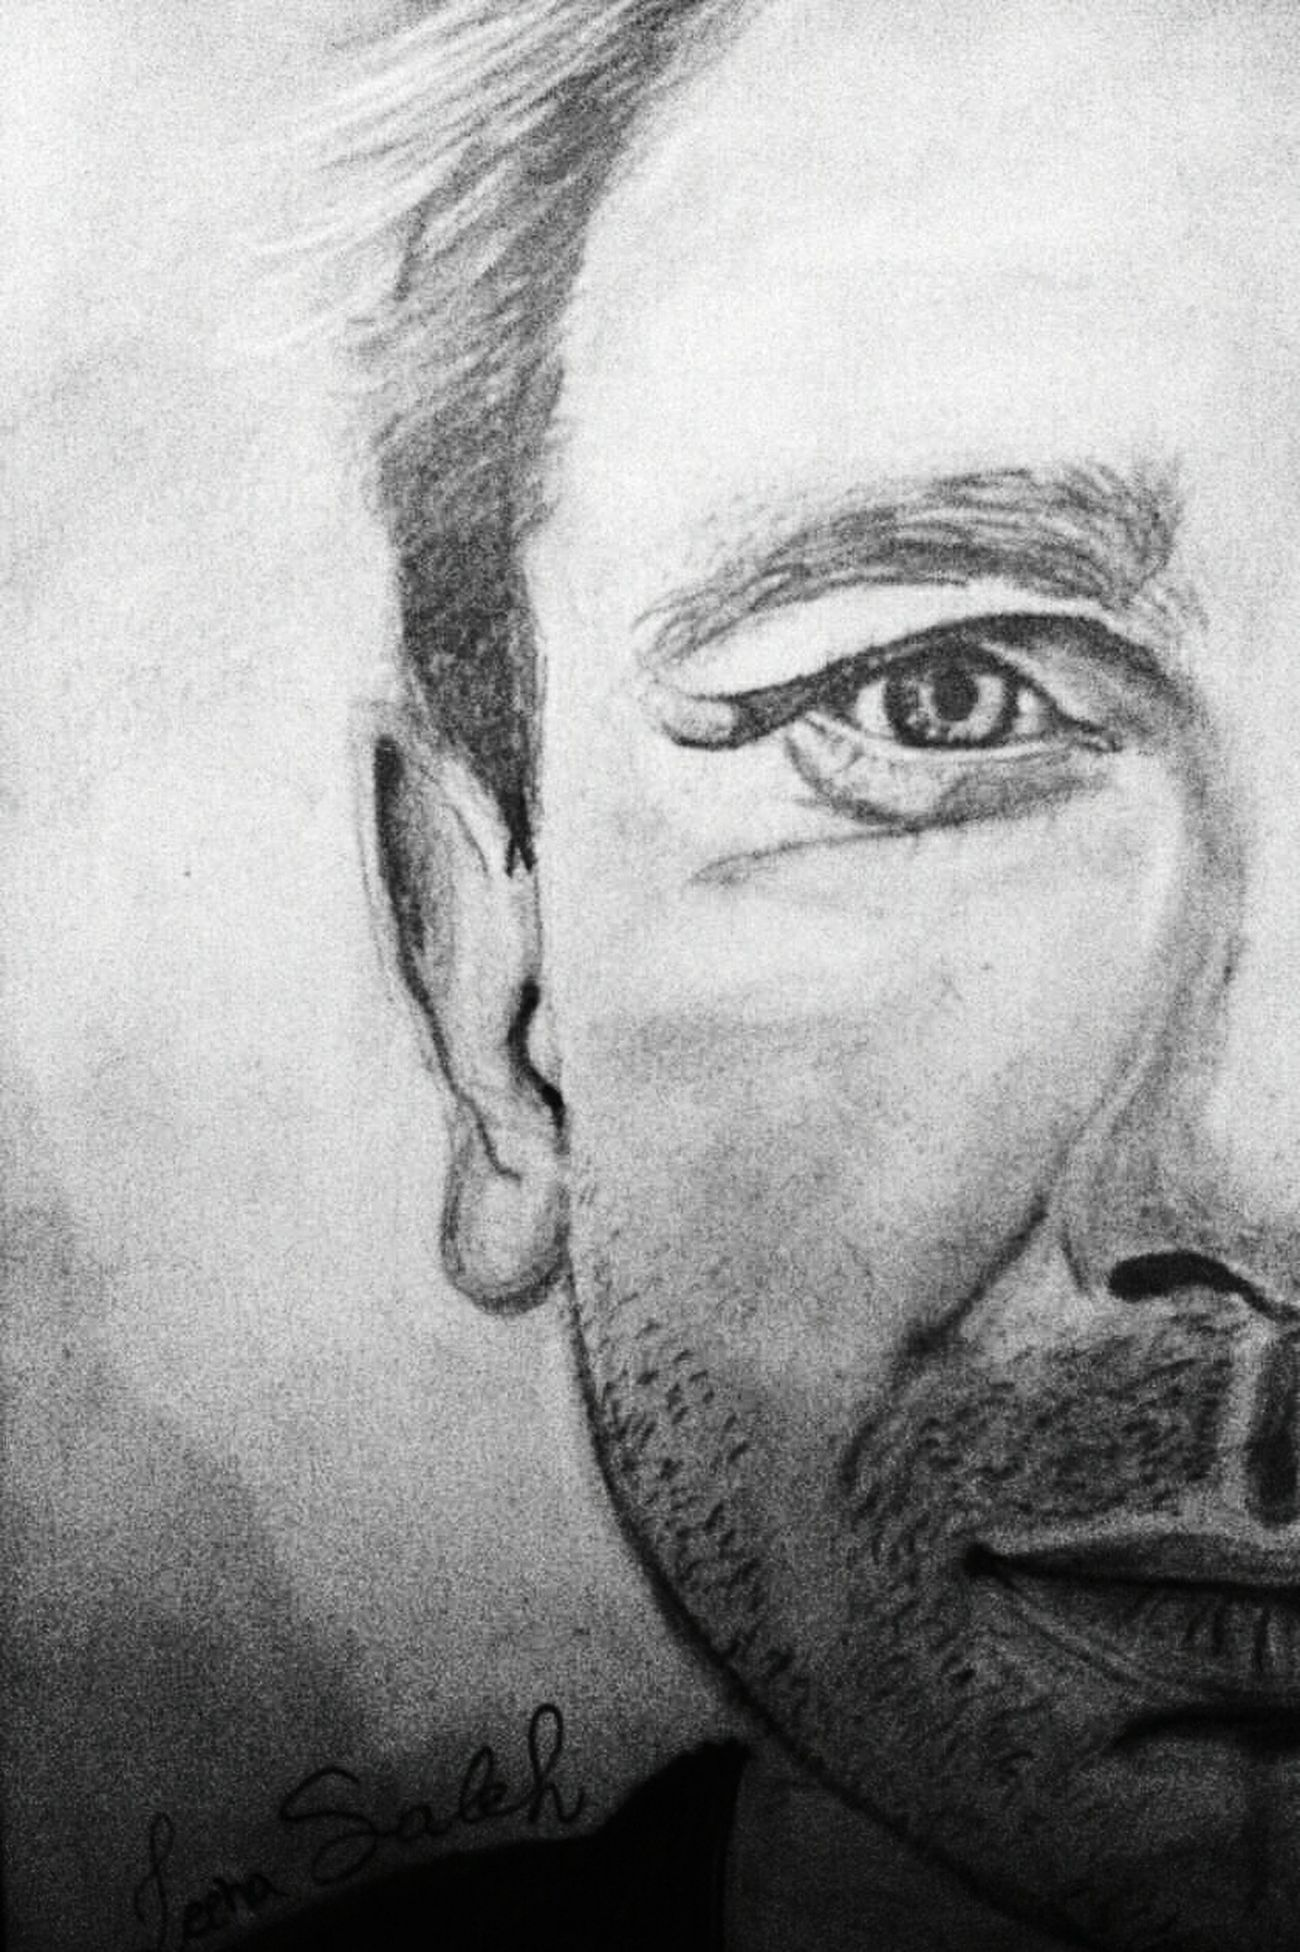 Half Half Face Half Face Portrait Half Portrait Eye Details Eye Eye Brow Eye Brow Details Mouth Mouth Details Half Head One Eye . Close-up Sketch My Art Work White & Black White Sketch Sketching Portrait Of A Man  EyeEmArt EyeEm Gallery Pencil Pencil Drawing Art Gallery Love Drawing ❤